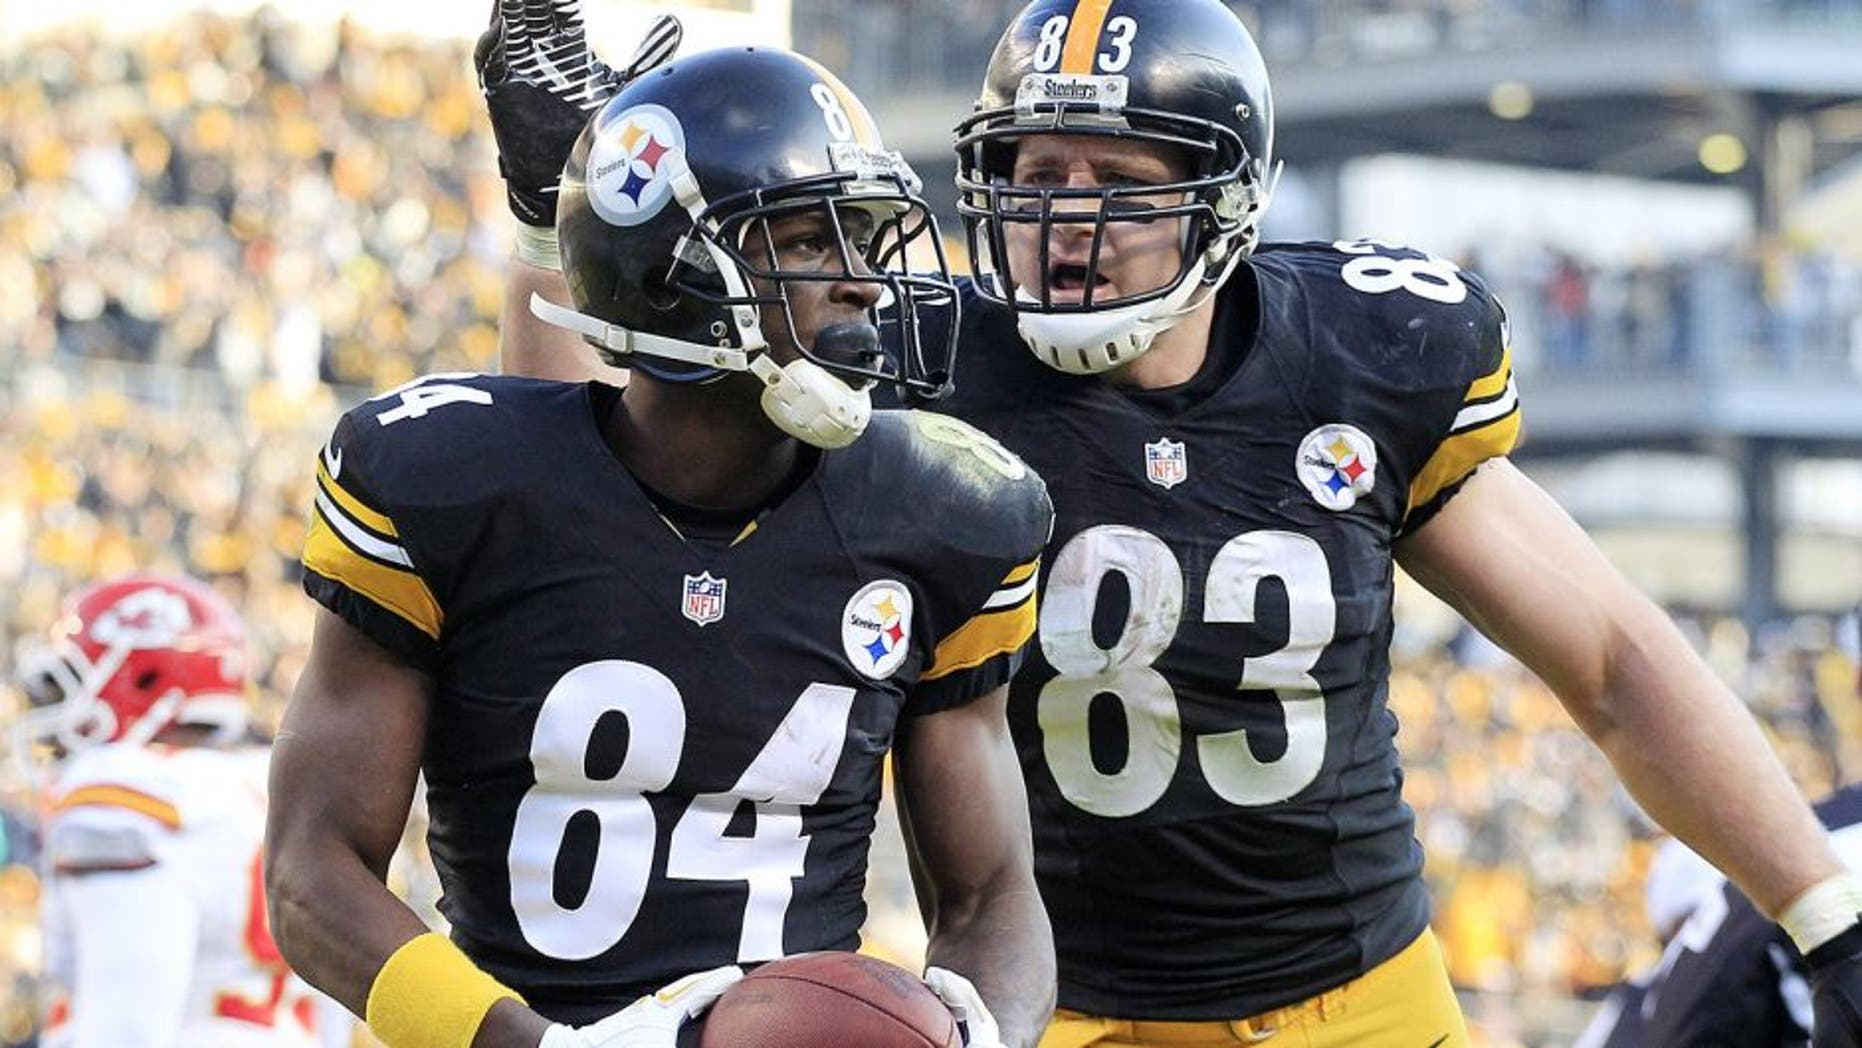 Dec 21, 2014; Pittsburgh, PA, USA; Pittsburgh Steelers wide receiver Antonio Brown (84) and tight end Heath Miller (83) celebrate after Brown scored a touchdown against the Kansas City Chiefs during the third quarter at Heinz Field. The Steelers won 20-12. Mandatory Credit: Charles LeClaire-USA TODAY Sports